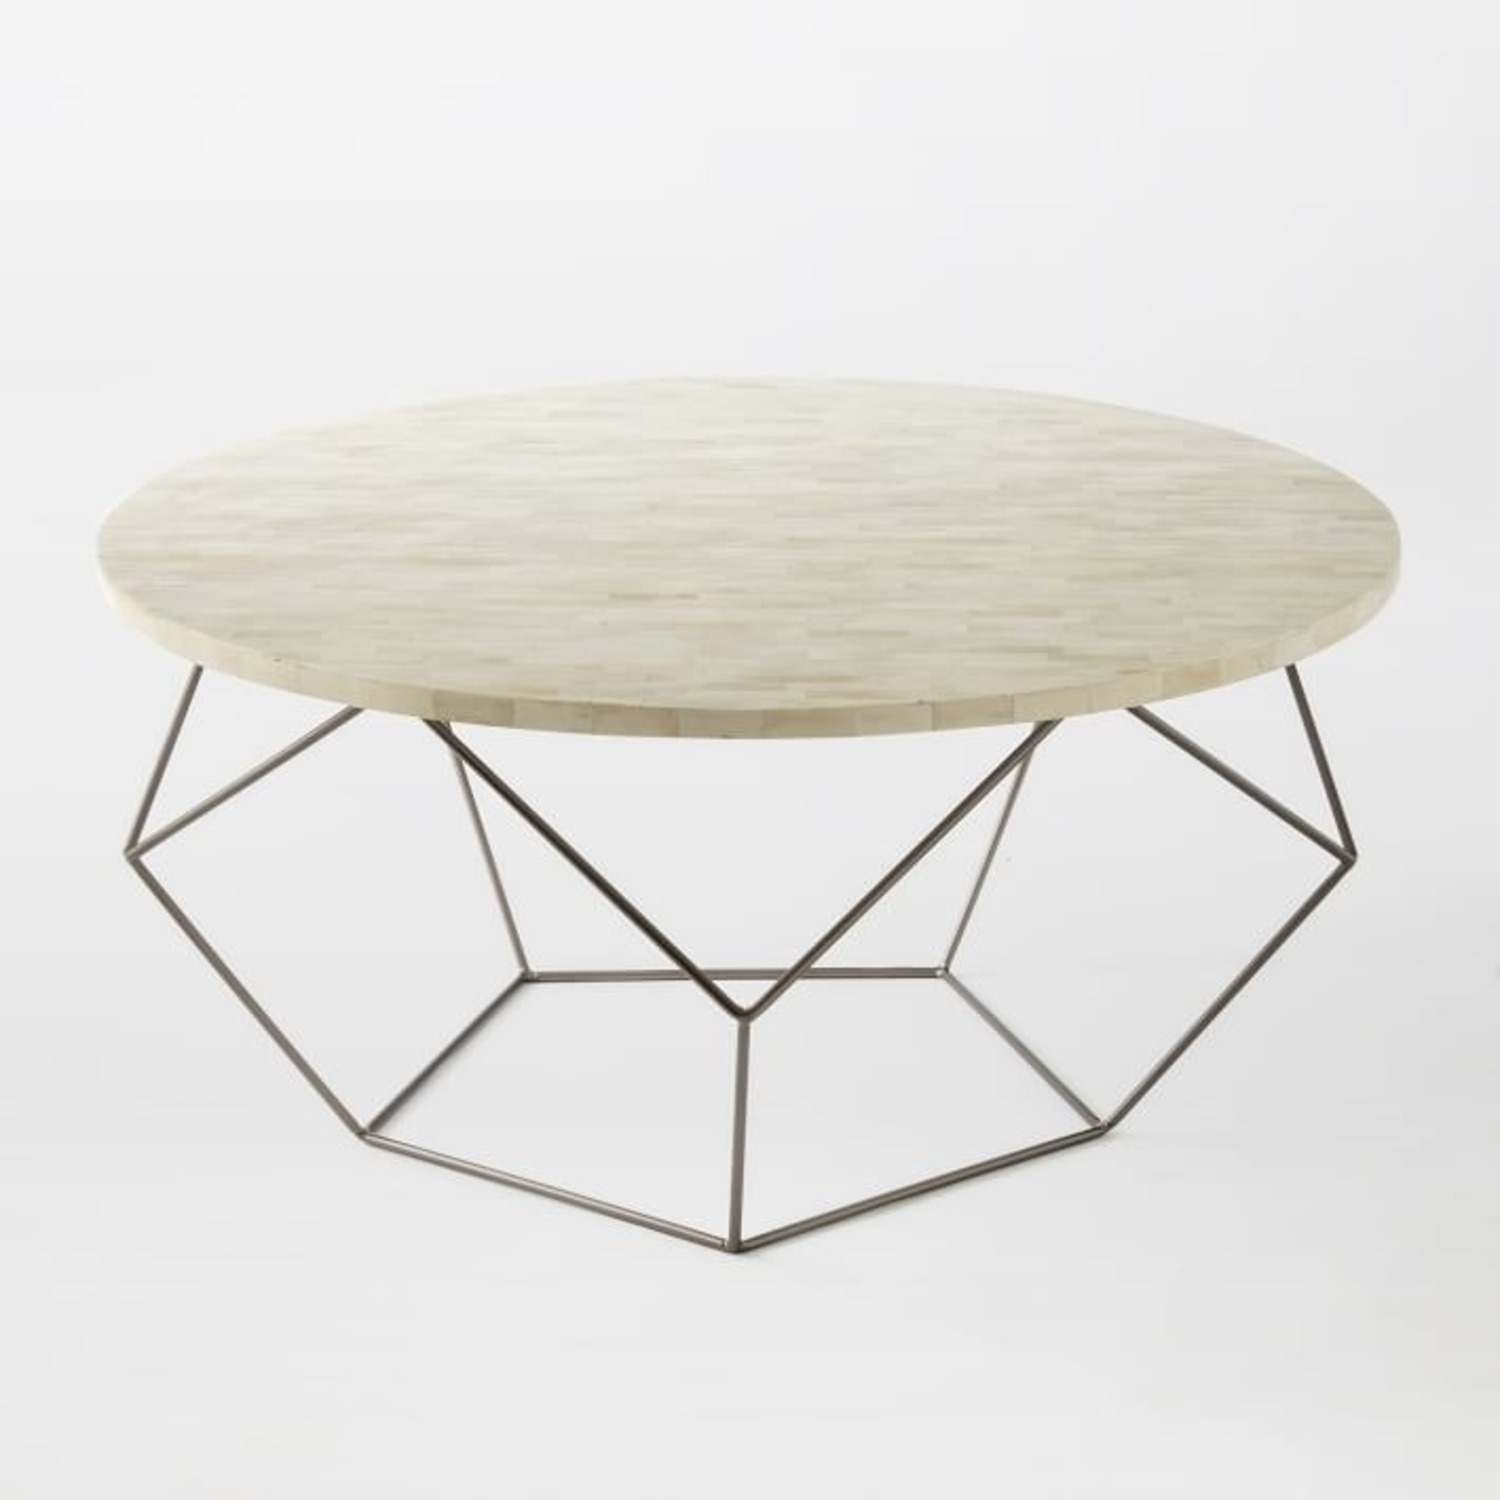 West Elm Origami Oversized Coffee Table - image-1